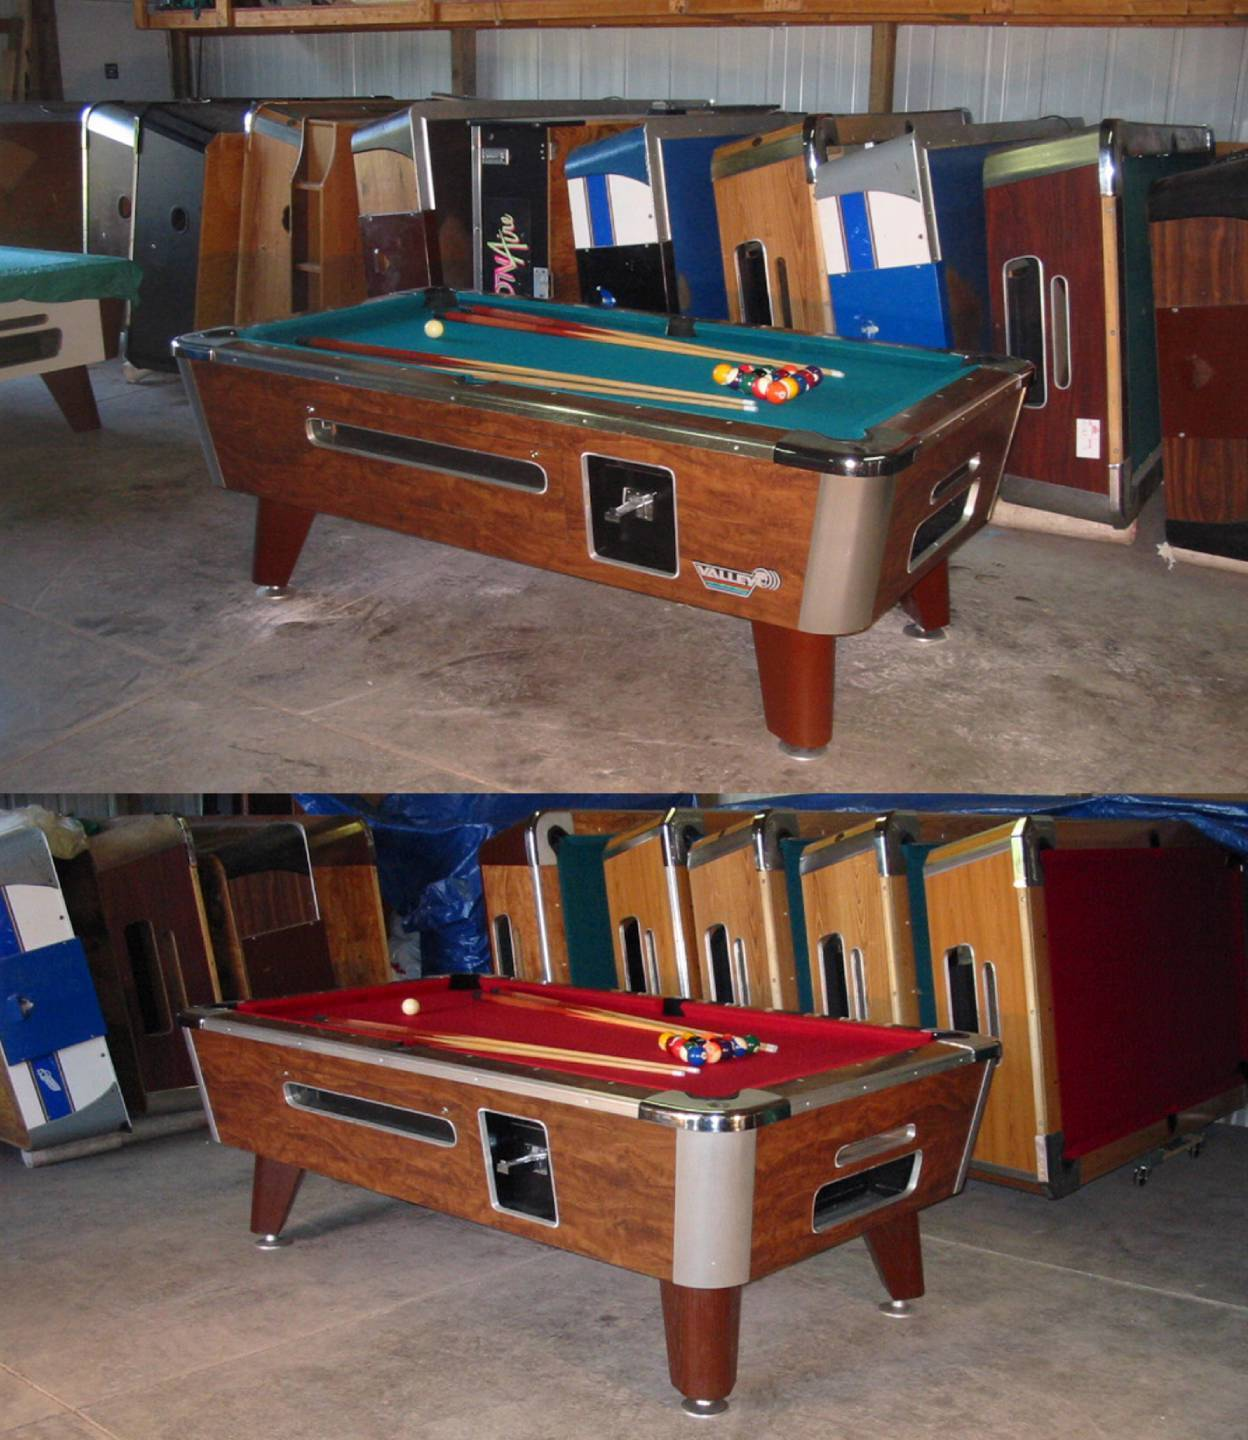 Valley Cougar Commercial 6 1/2′ Coin-op Pool Table Nice